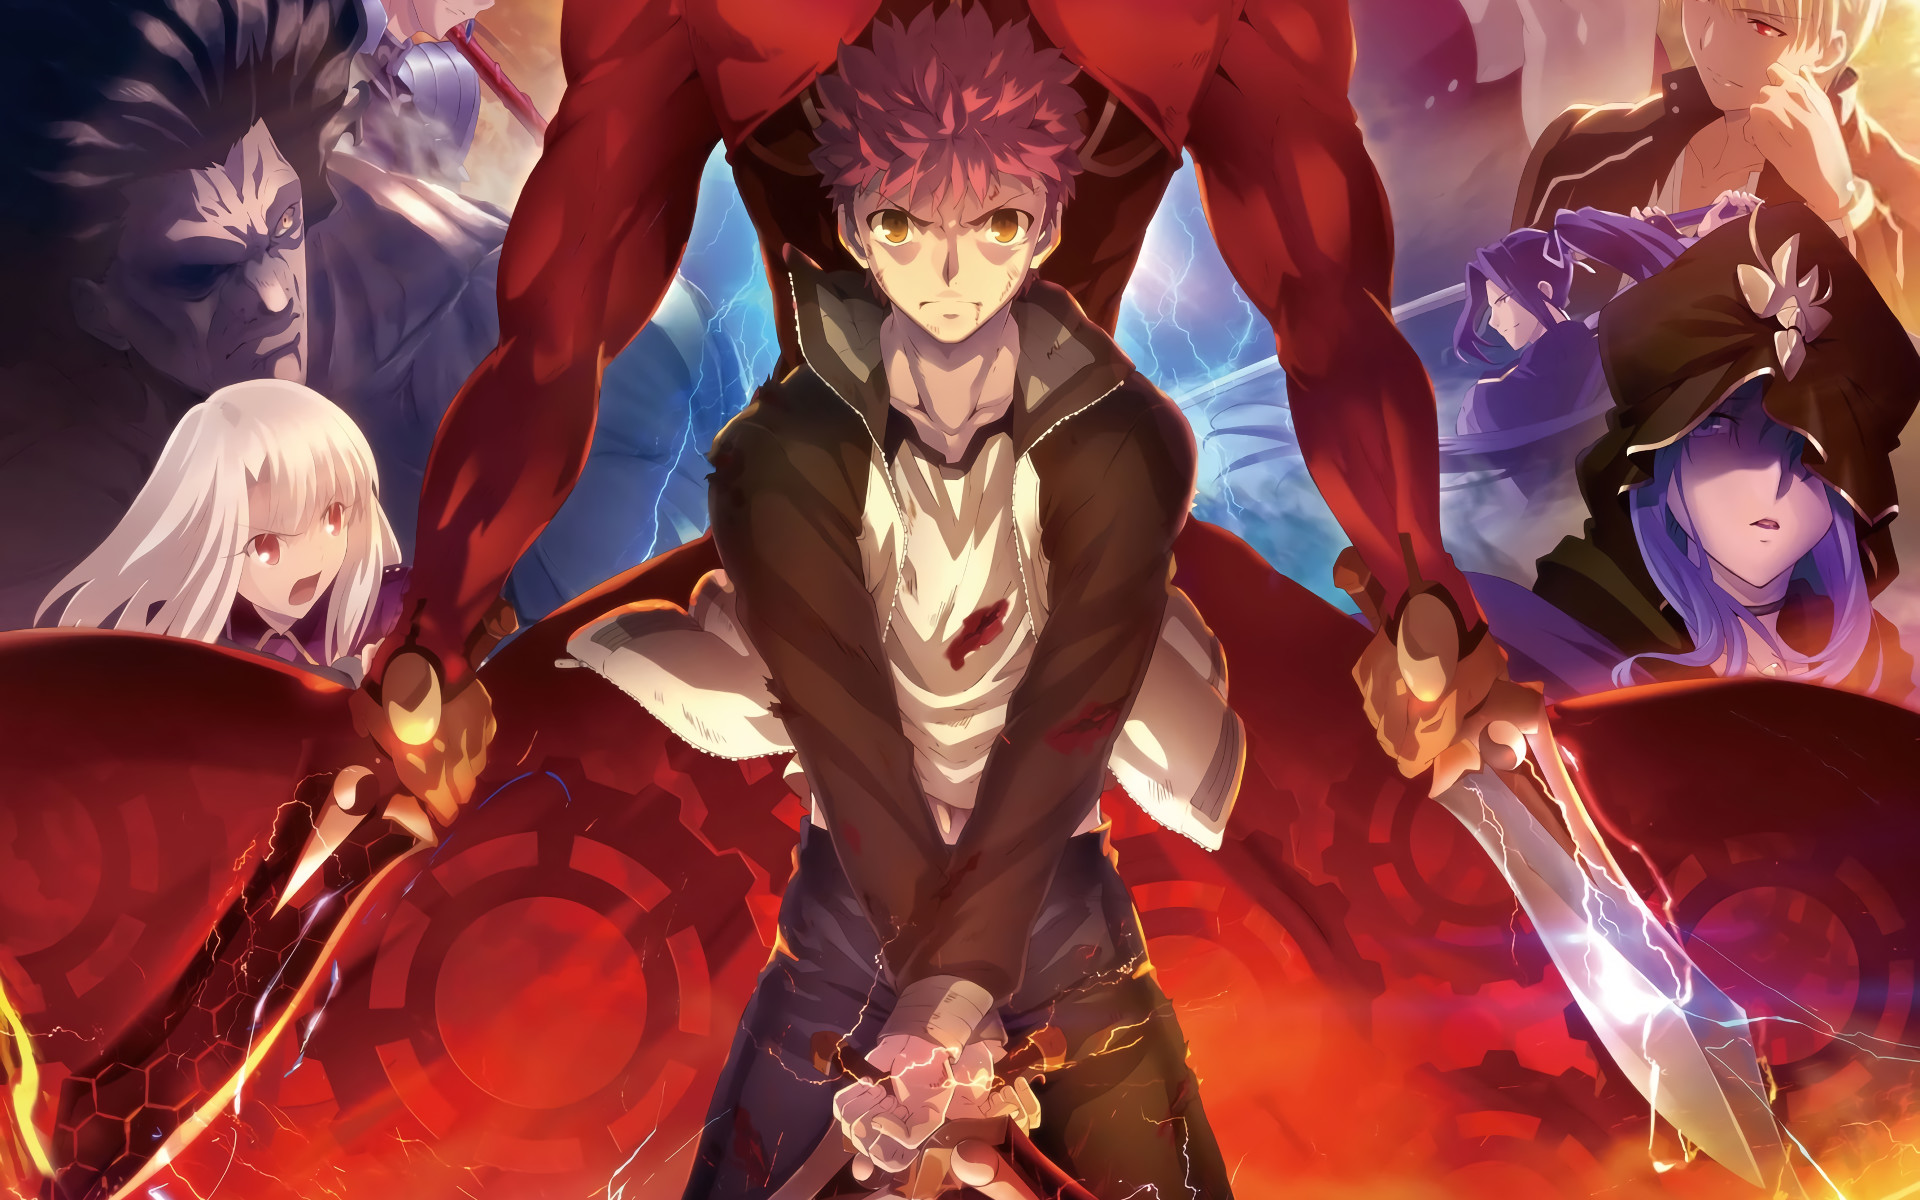 1920x1200 Anime - Fate/Stay Night: Unlimited Blade Works Illyasviel Von Einzbern  Shirou Emiya Archer